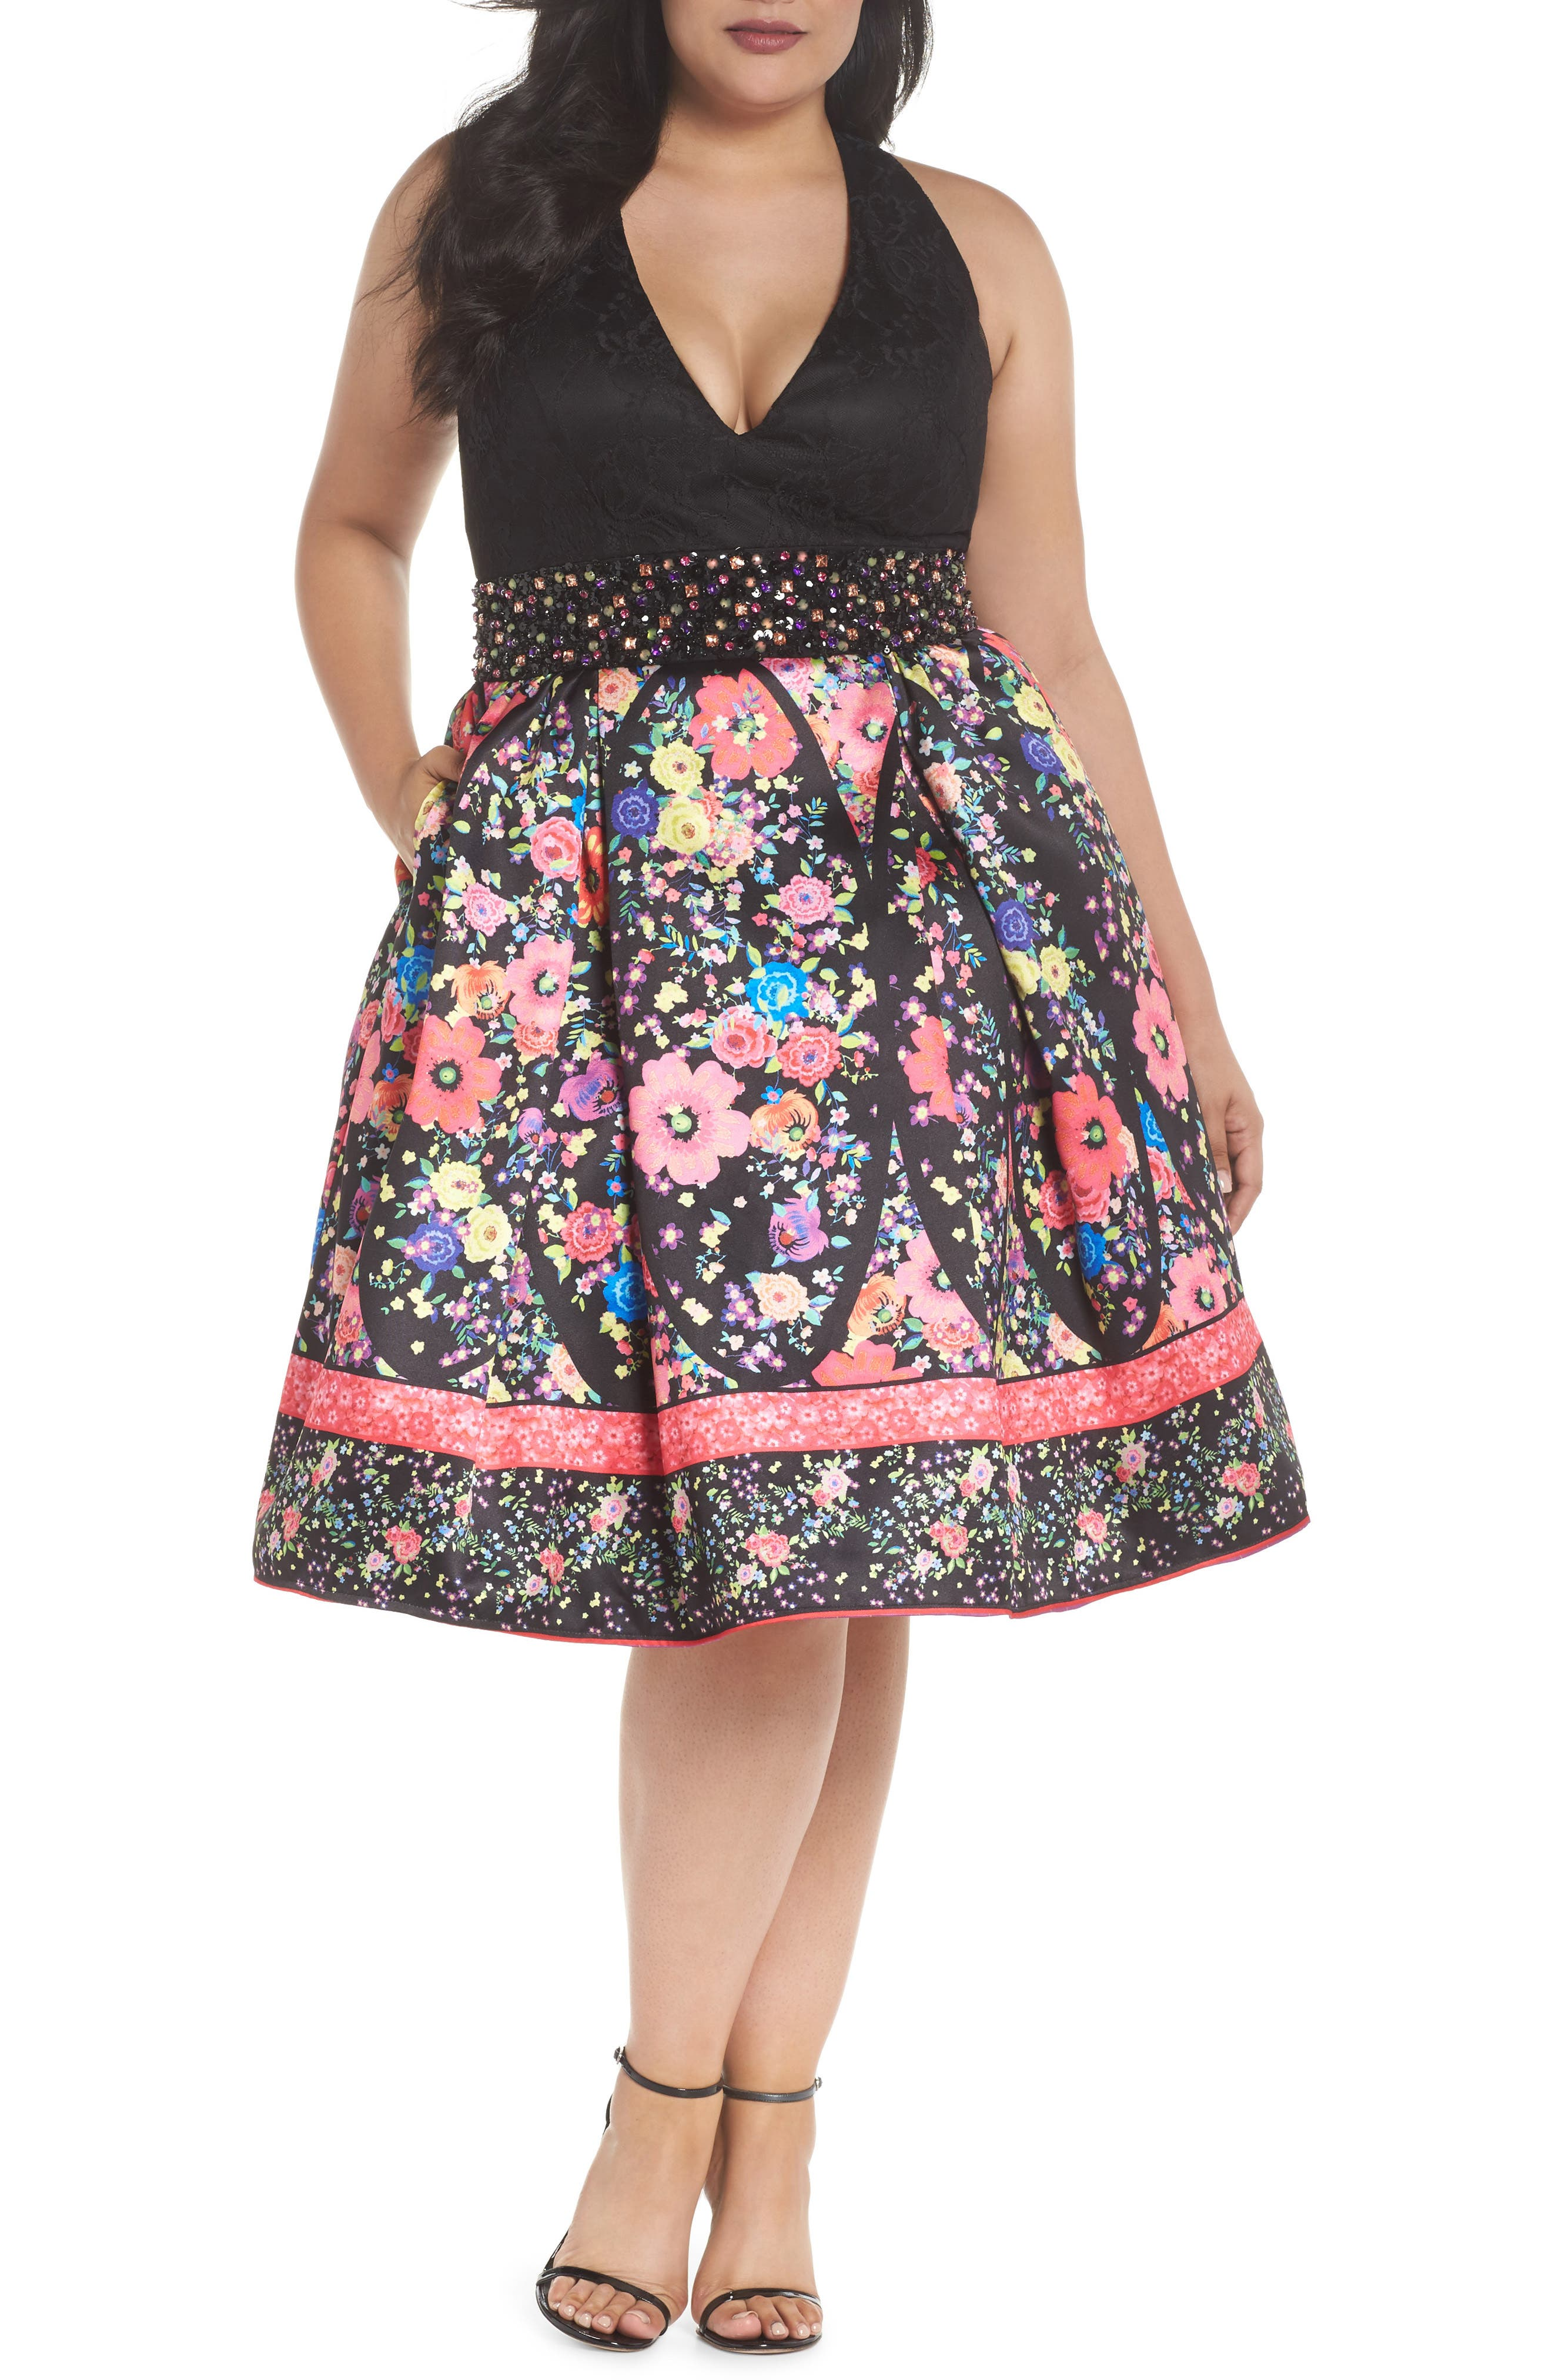 Alternate Image 1 Selected - Mac Duggal Lace & Floral Halter Fit & Flare Dress (Plus Size)